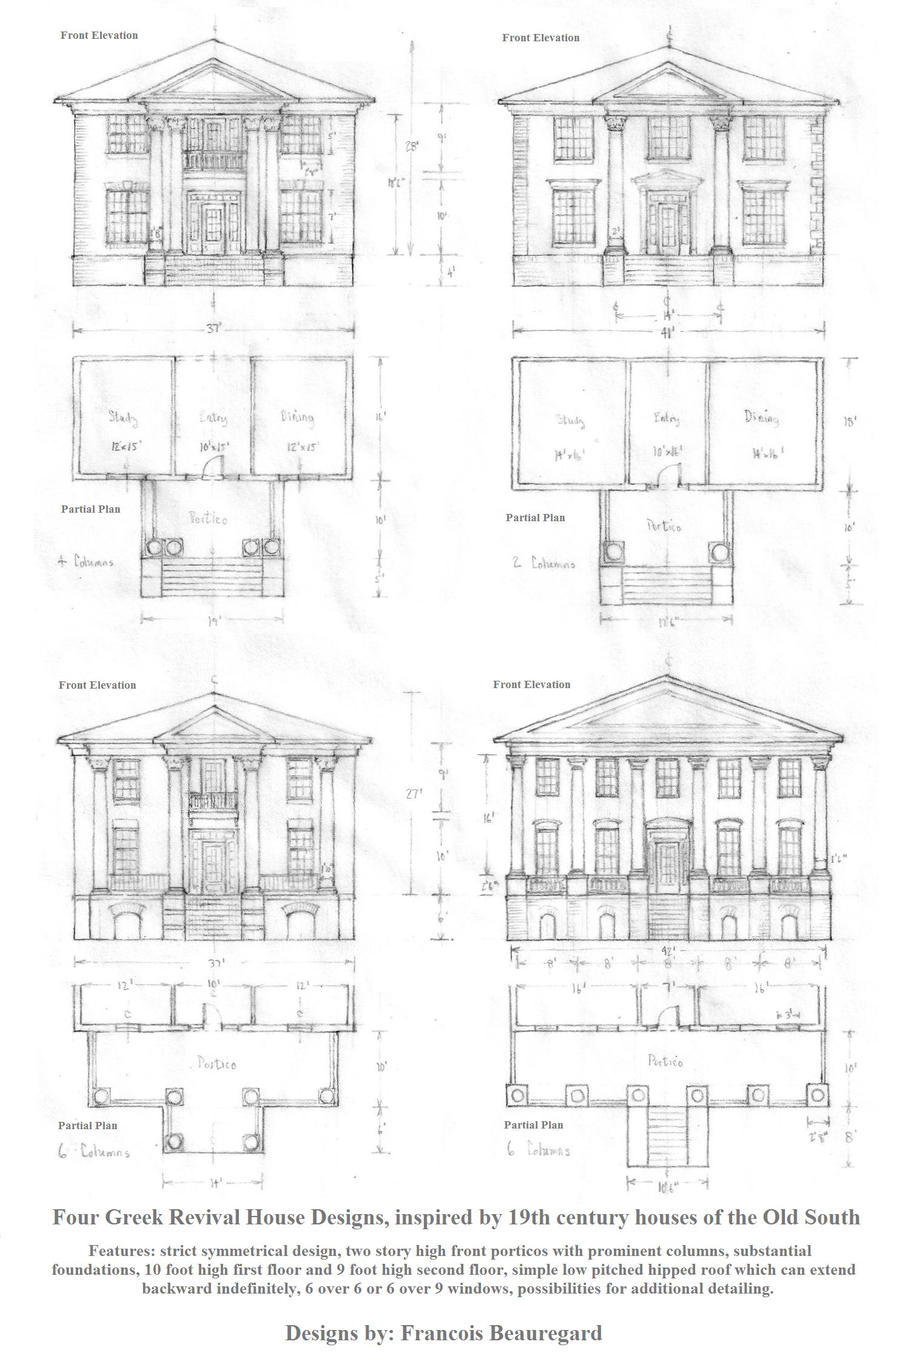 Four Greek Revival Houses by Built4ever on DeviantArt on jeffersonian house plans, italianate house plans, plantation house plans, ranch house plans, cape cod house plans, colonial house plans, split level house plans, victorian house plans, upstairs and downstairs bedroom house plans, european house plans, craftsman house plans, greek house drawings, adams style house plans, georgian home plans, french colonial home plans, southern house plans, traditional house plans, gothic revival home plans, contemporary house plans, neoclassical home plans,